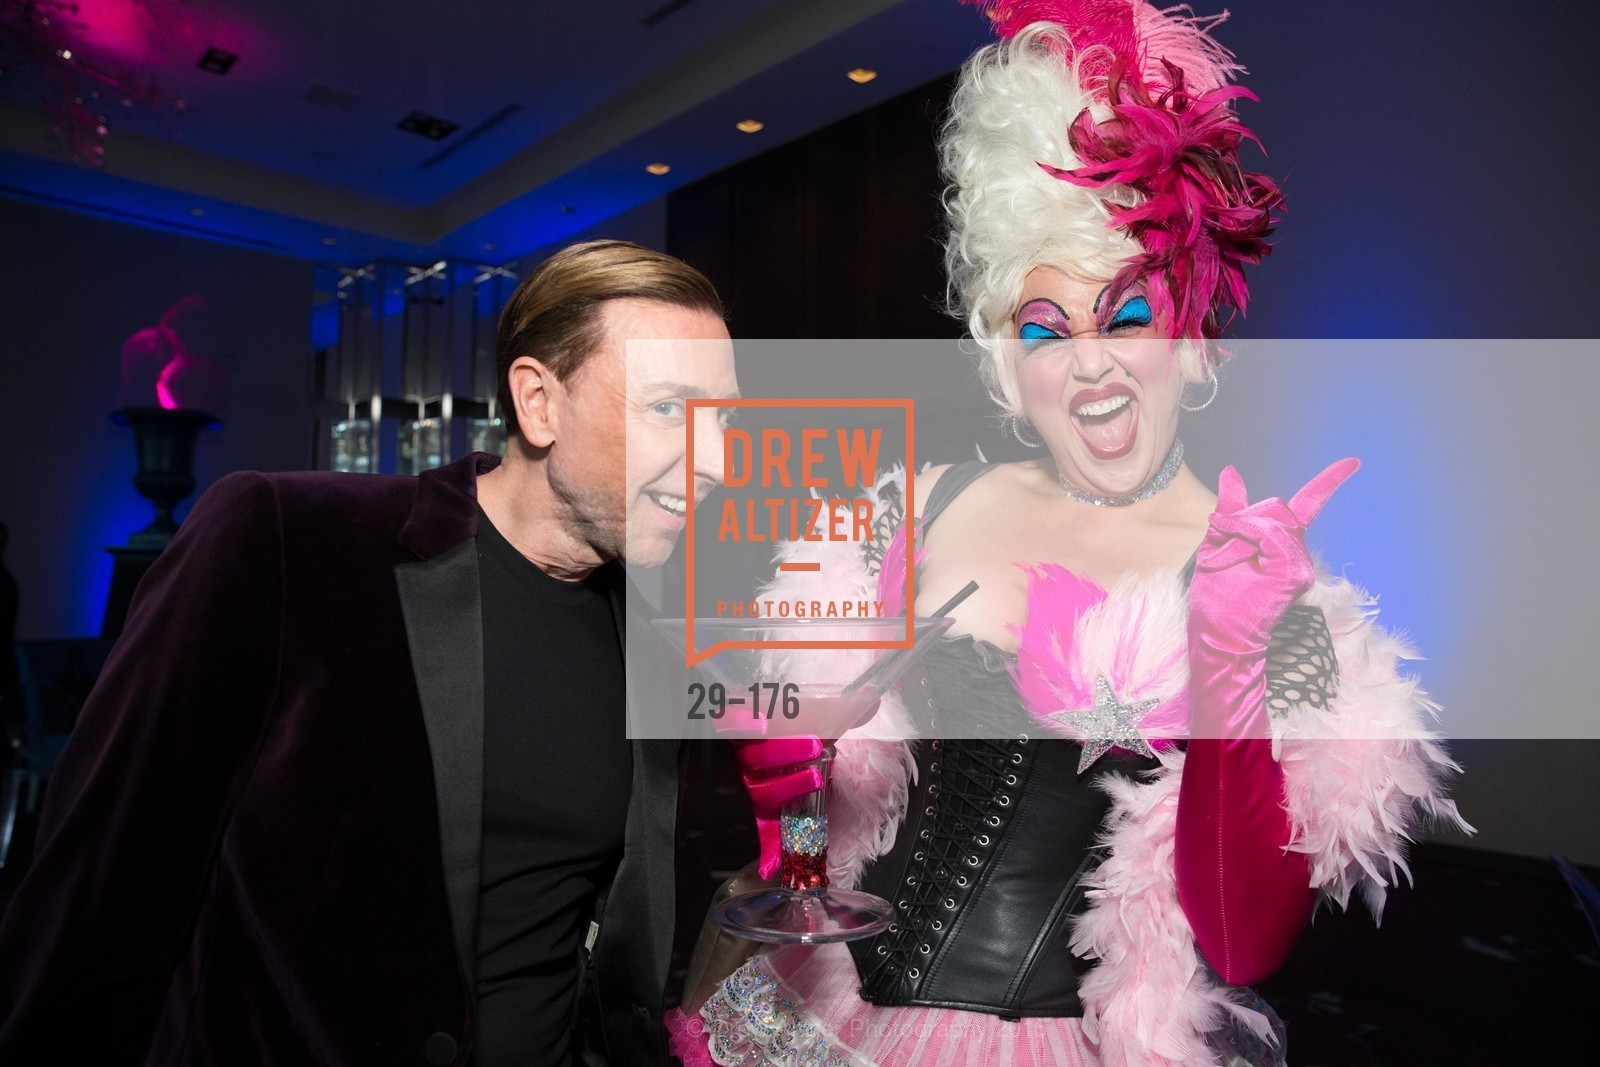 Mark Rhoades, Anita Cocktail, VIP Pride Celebration 2015, St. Regis, June 18th, 2015,Drew Altizer, Drew Altizer Photography, full-service agency, private events, San Francisco photographer, photographer california